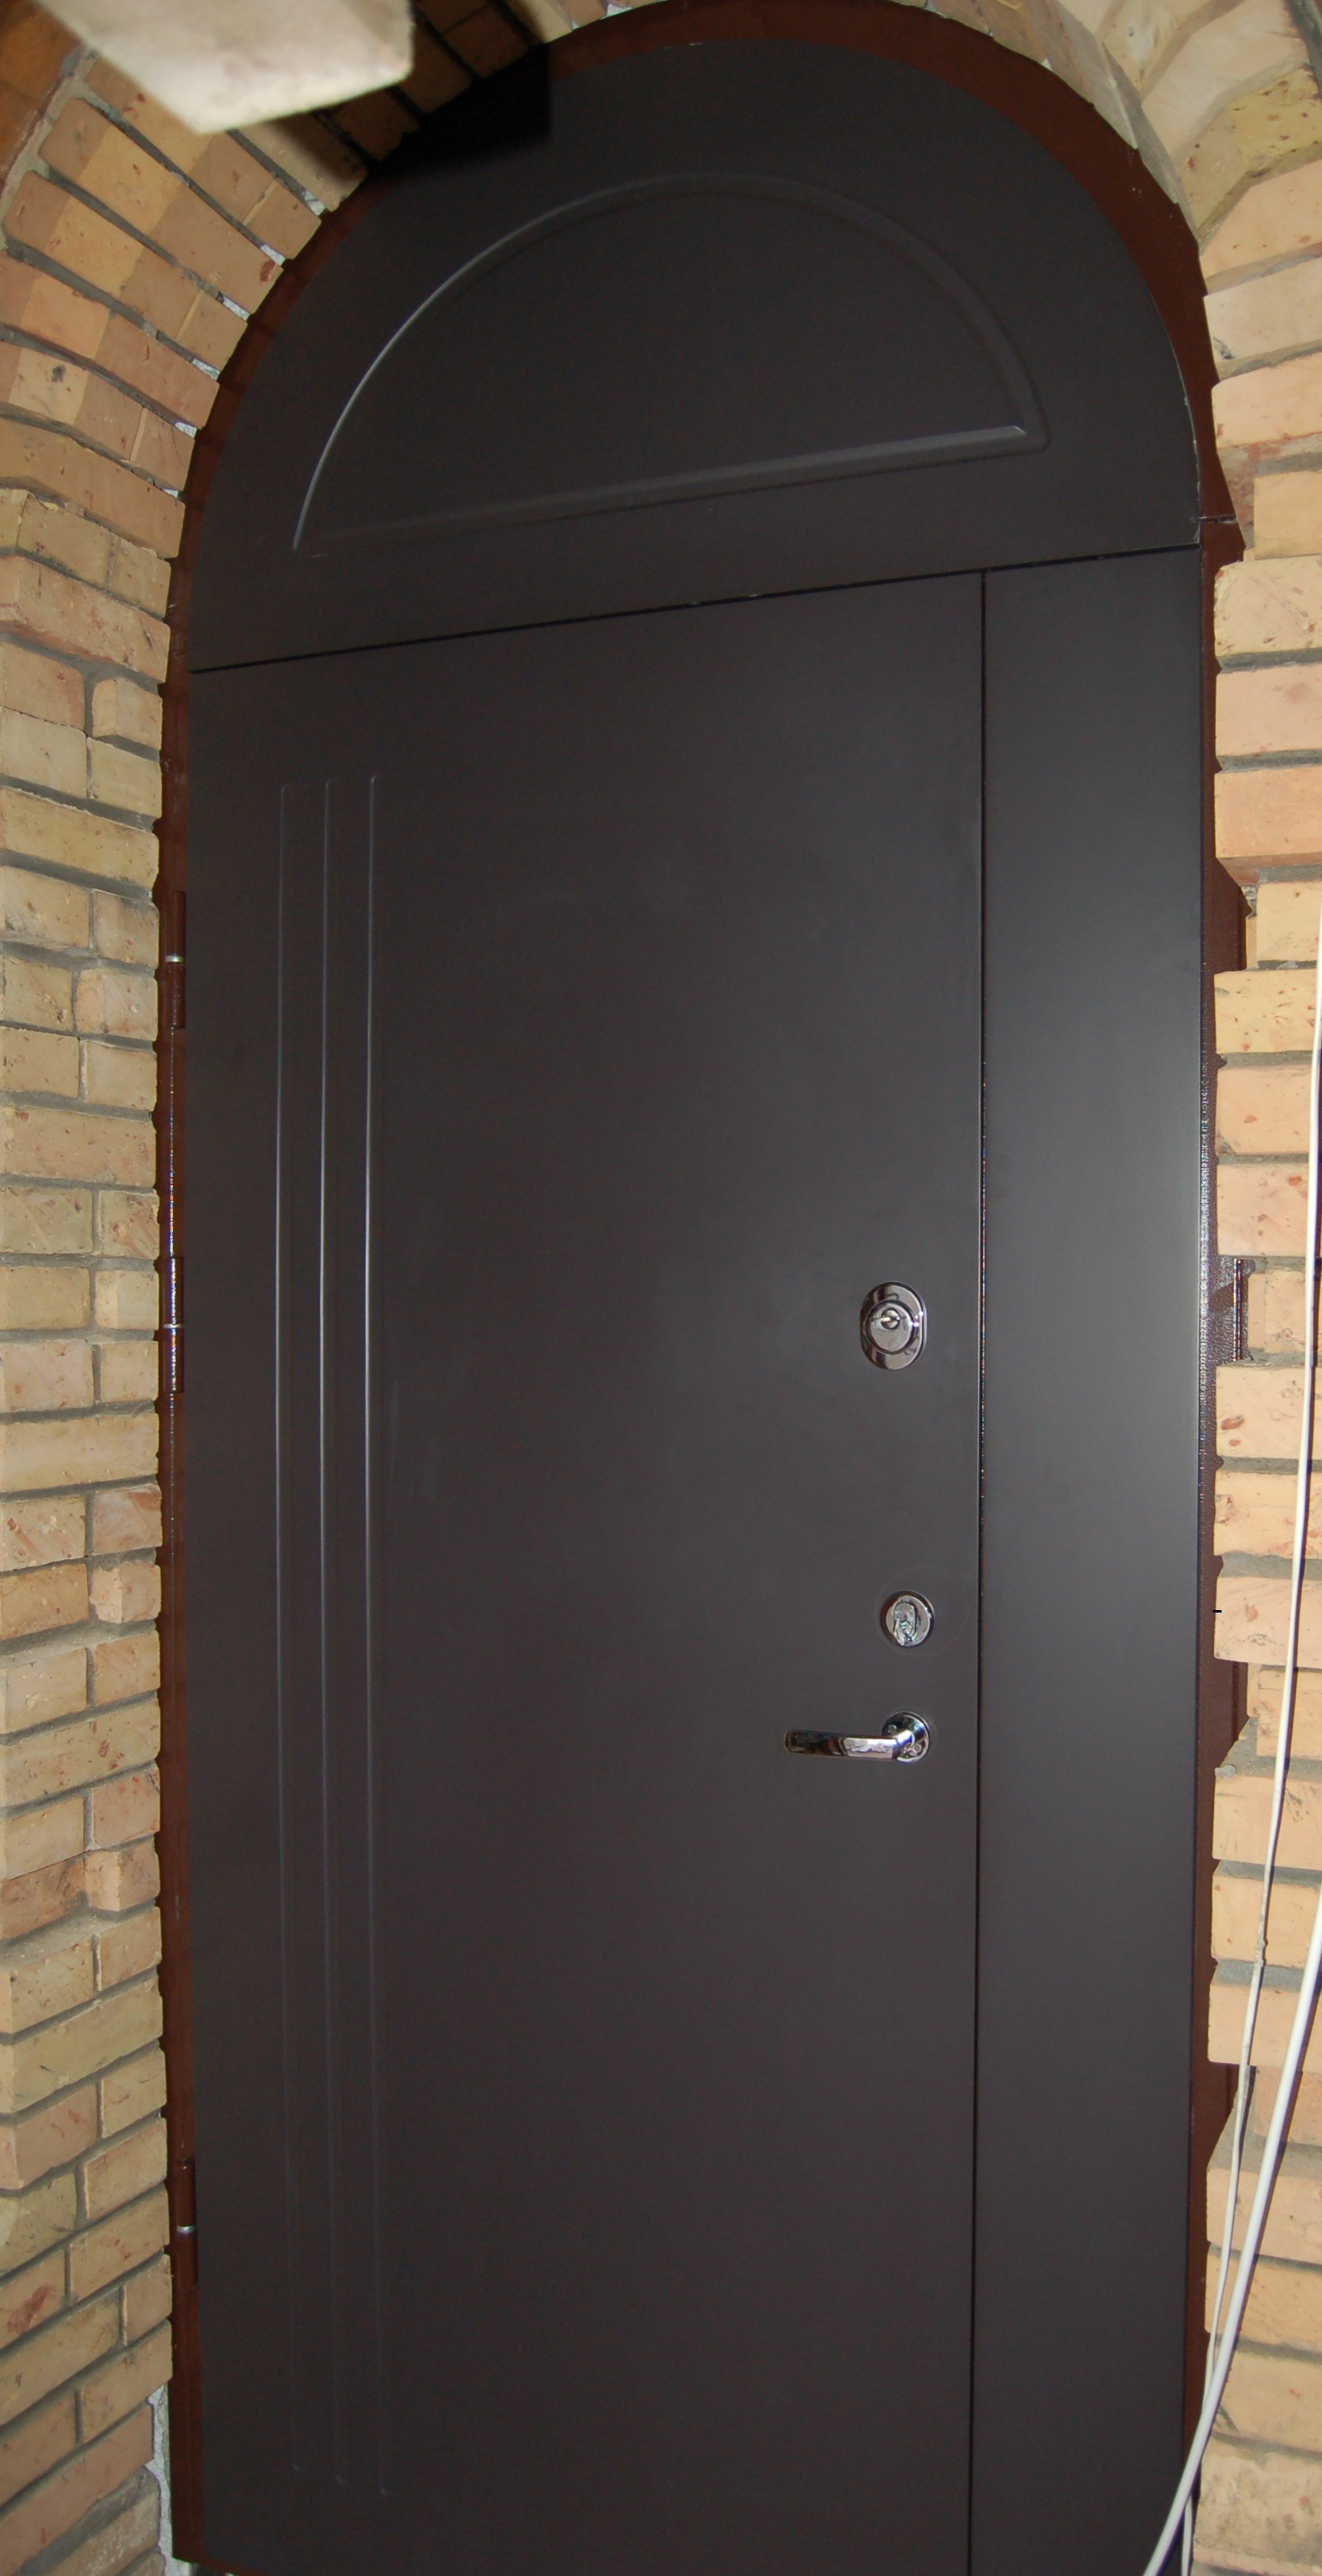 Seciro metal security doors seciro for Metal security doors